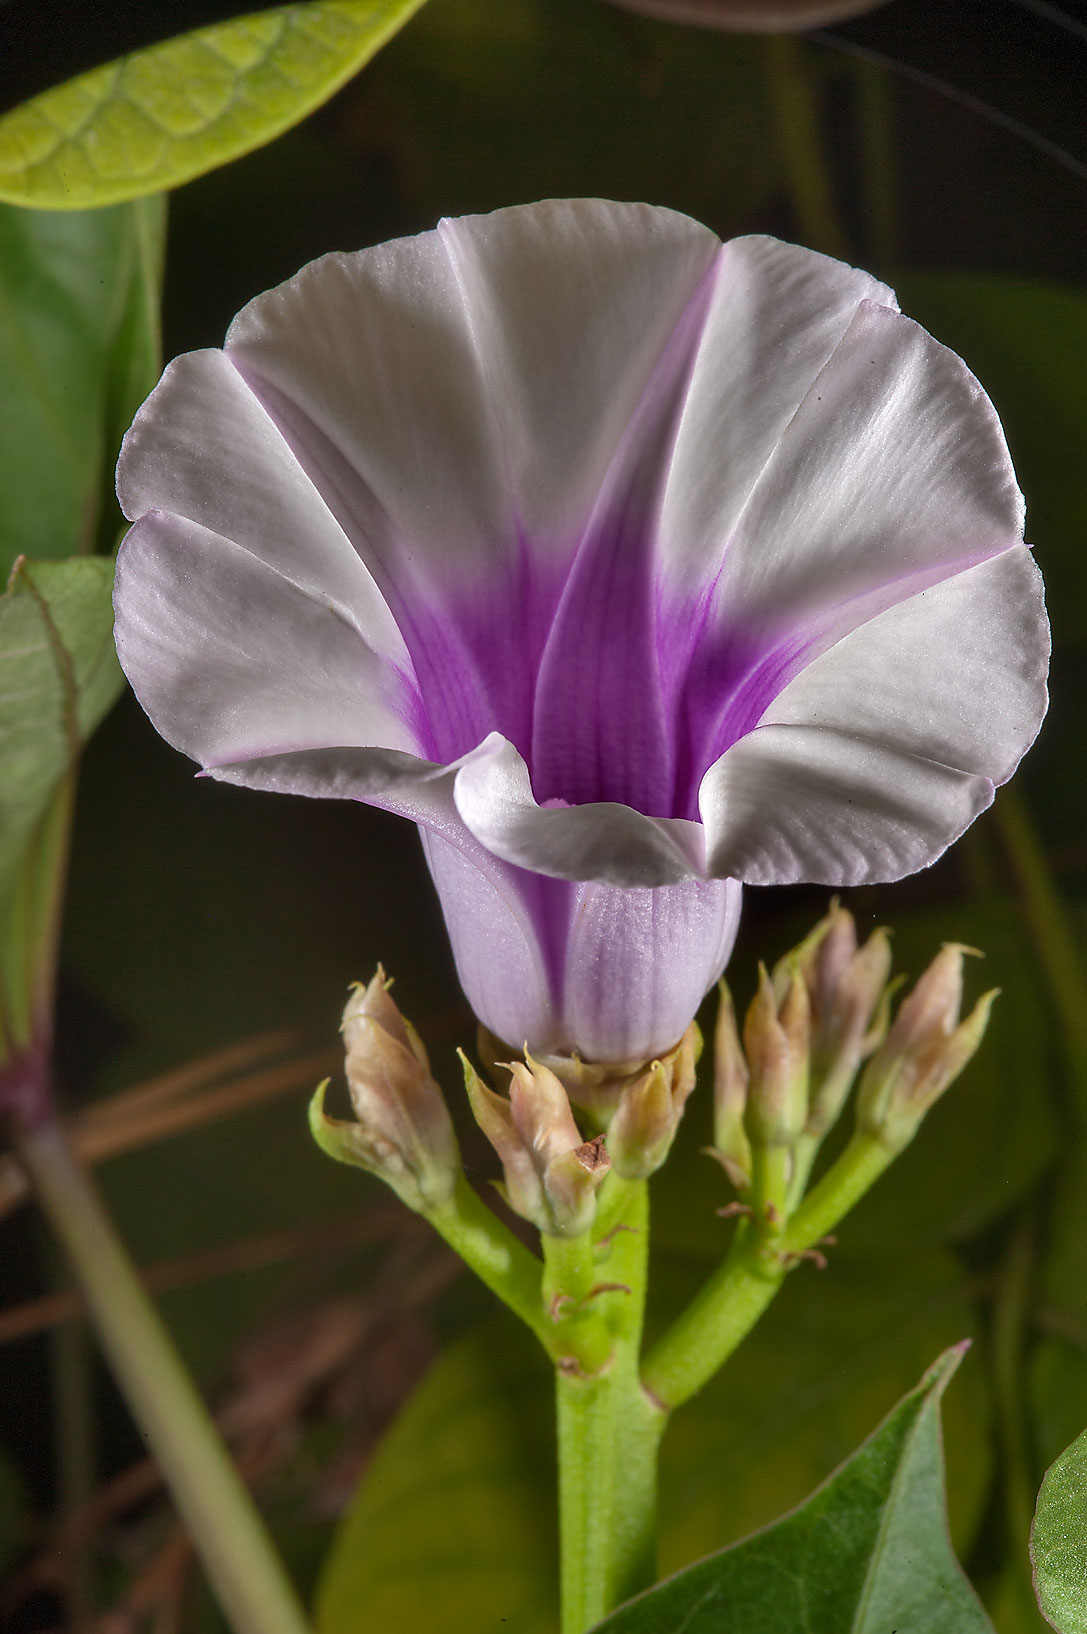 Ipomoea flower - search in pictures